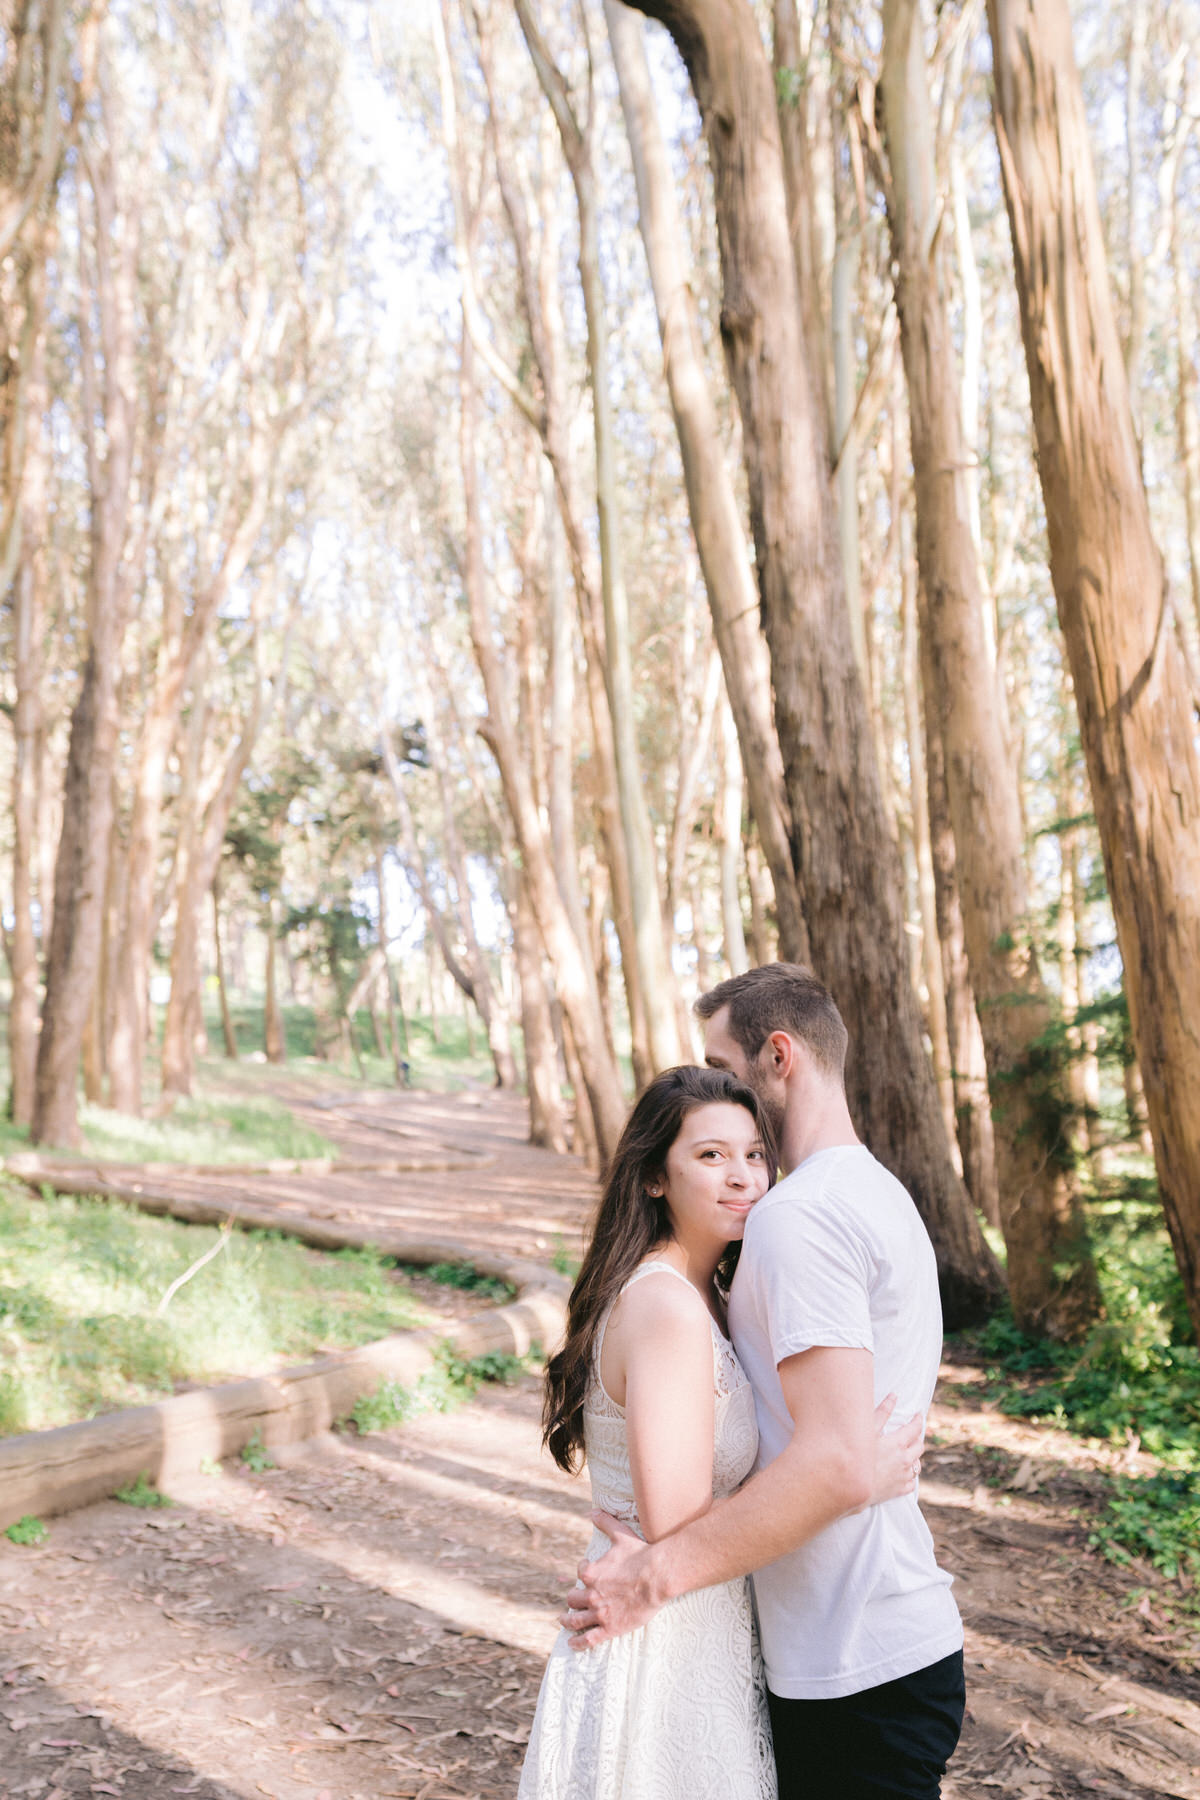 Couple embracing at Lovers lane trail in San Francisco during an engagement photo shoot.